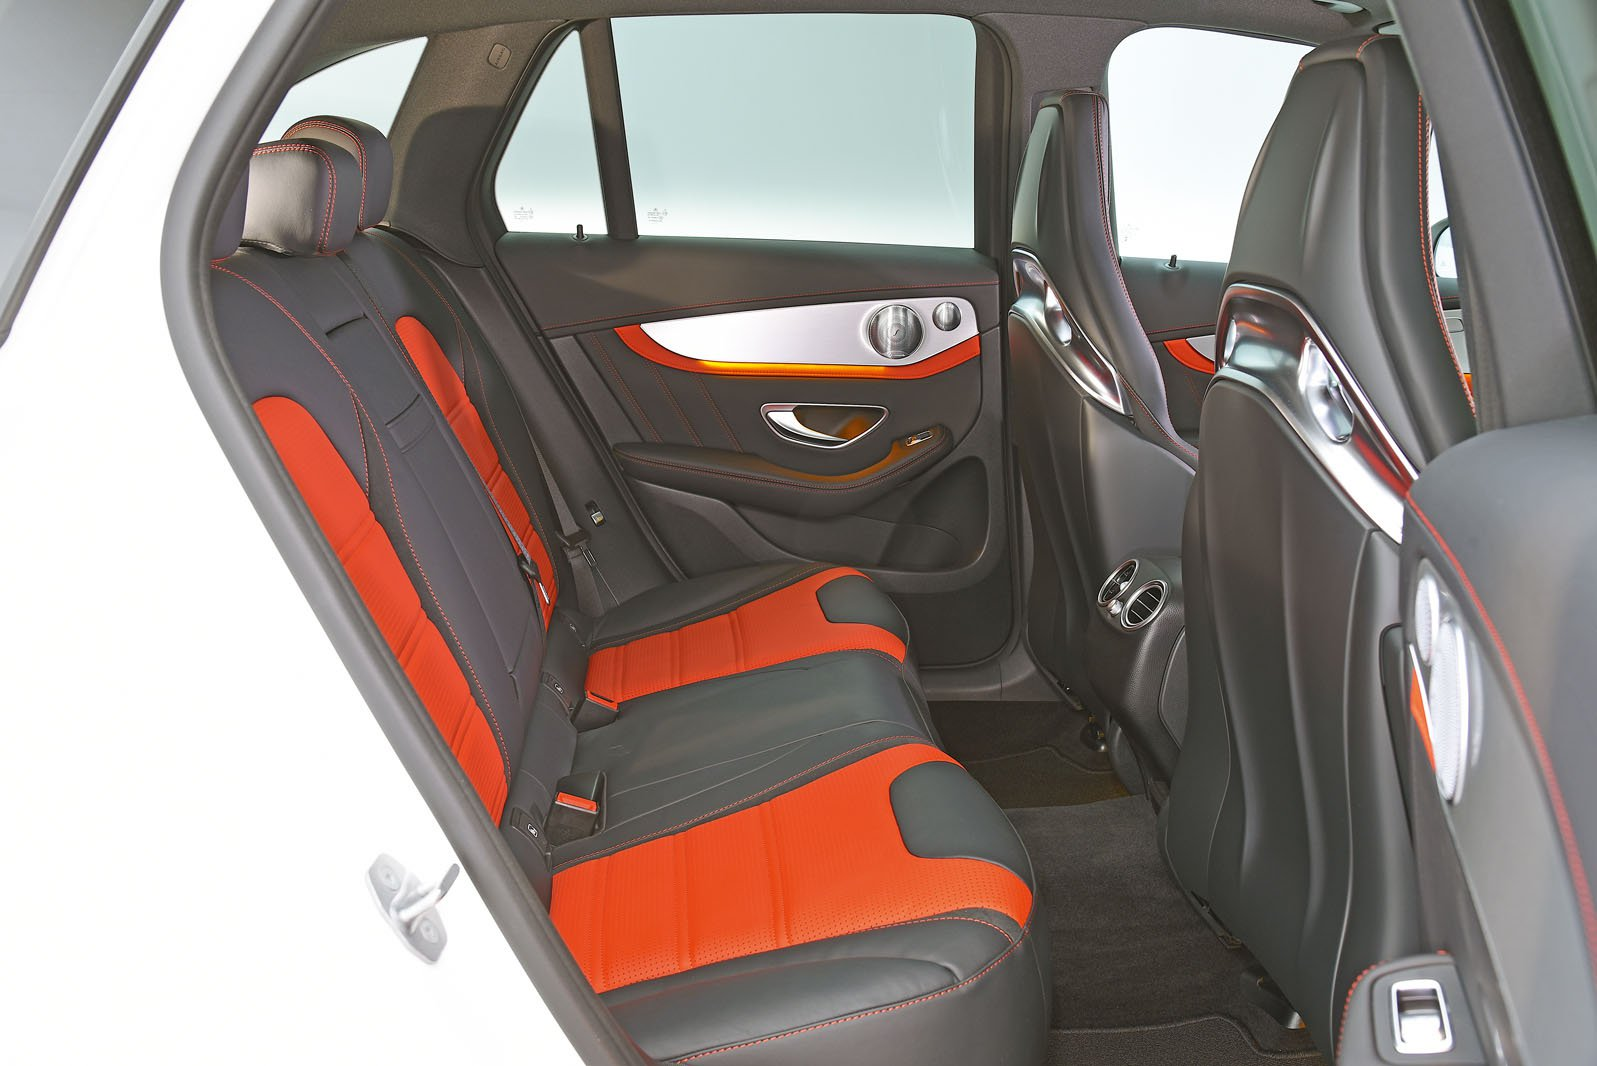 Mercedes AMG GLC 63 S rear seats